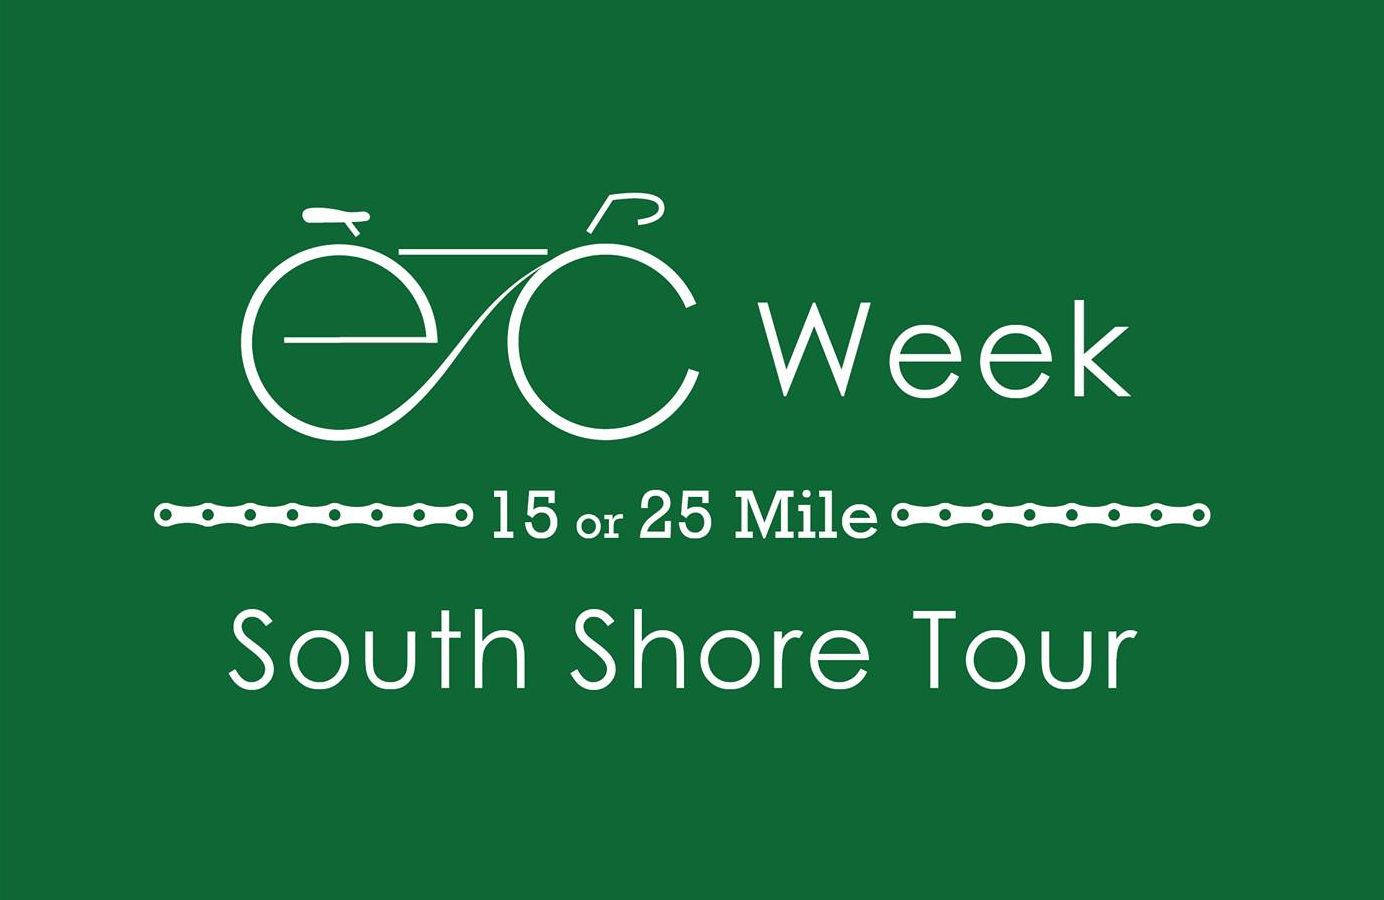 Join us for the South Shore Tour